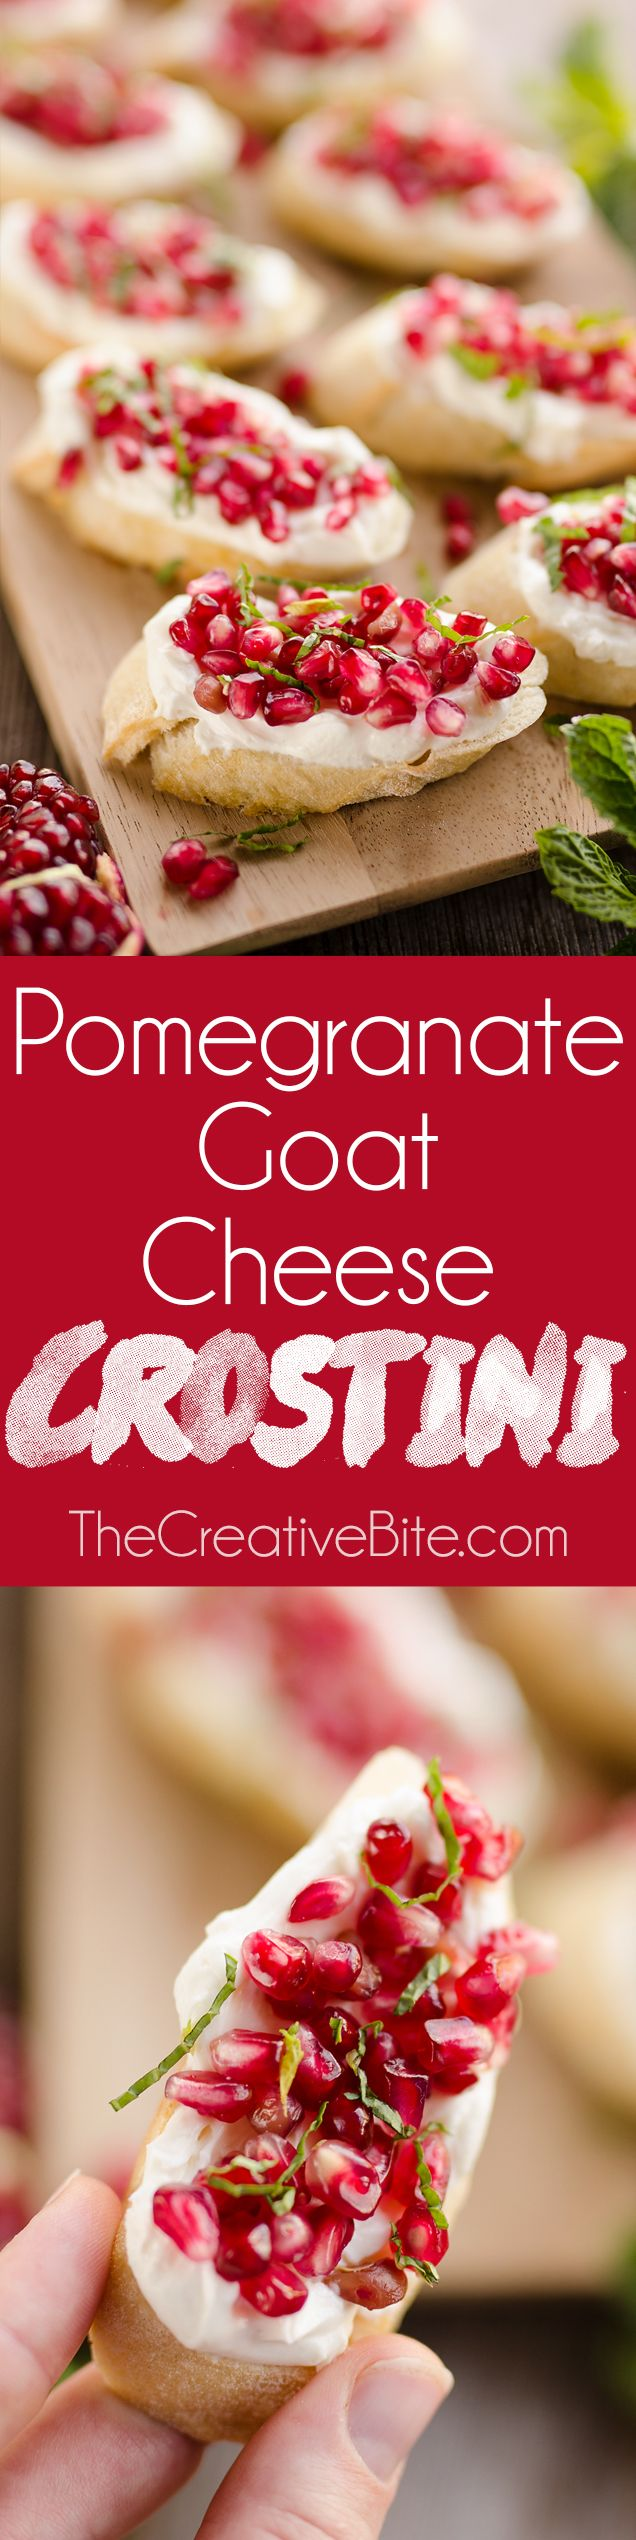 Pomegranate Goat Cheese Crostini are a beautiful and elegant appetizer perfect for an easy holiday party finger food with only 5 ingredients! #pomegranate #appetizer #holiday